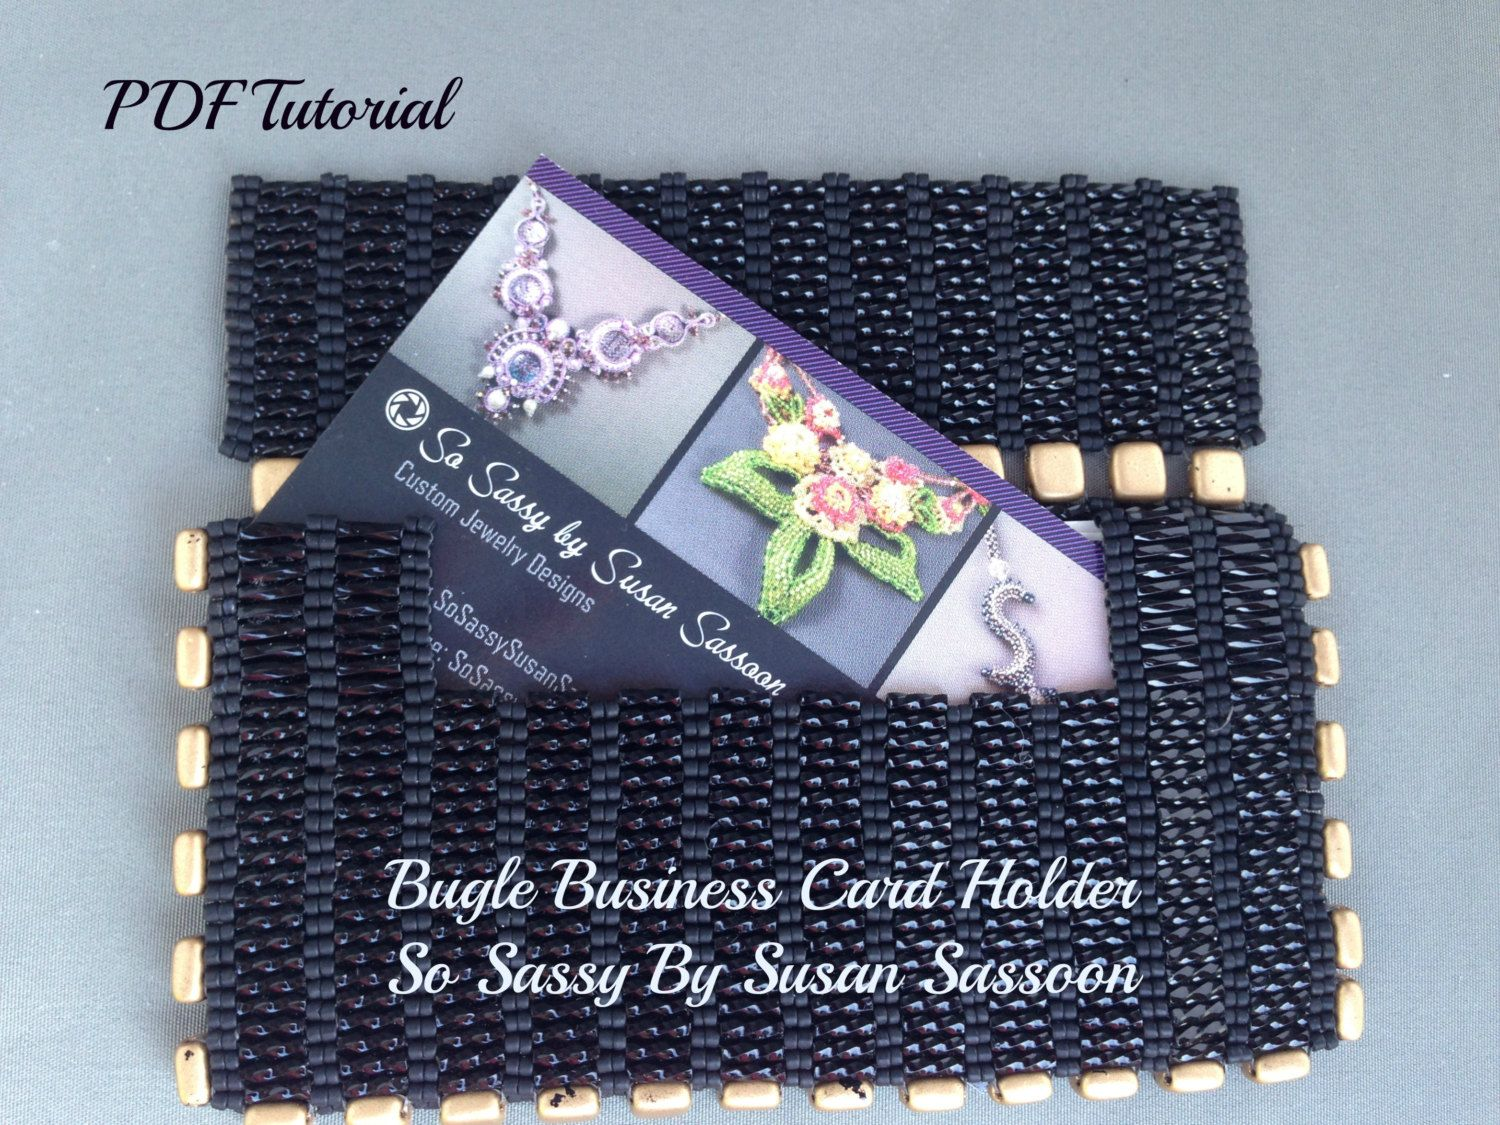 Bugle Business Card Holder Tutorial | Business card holders ...